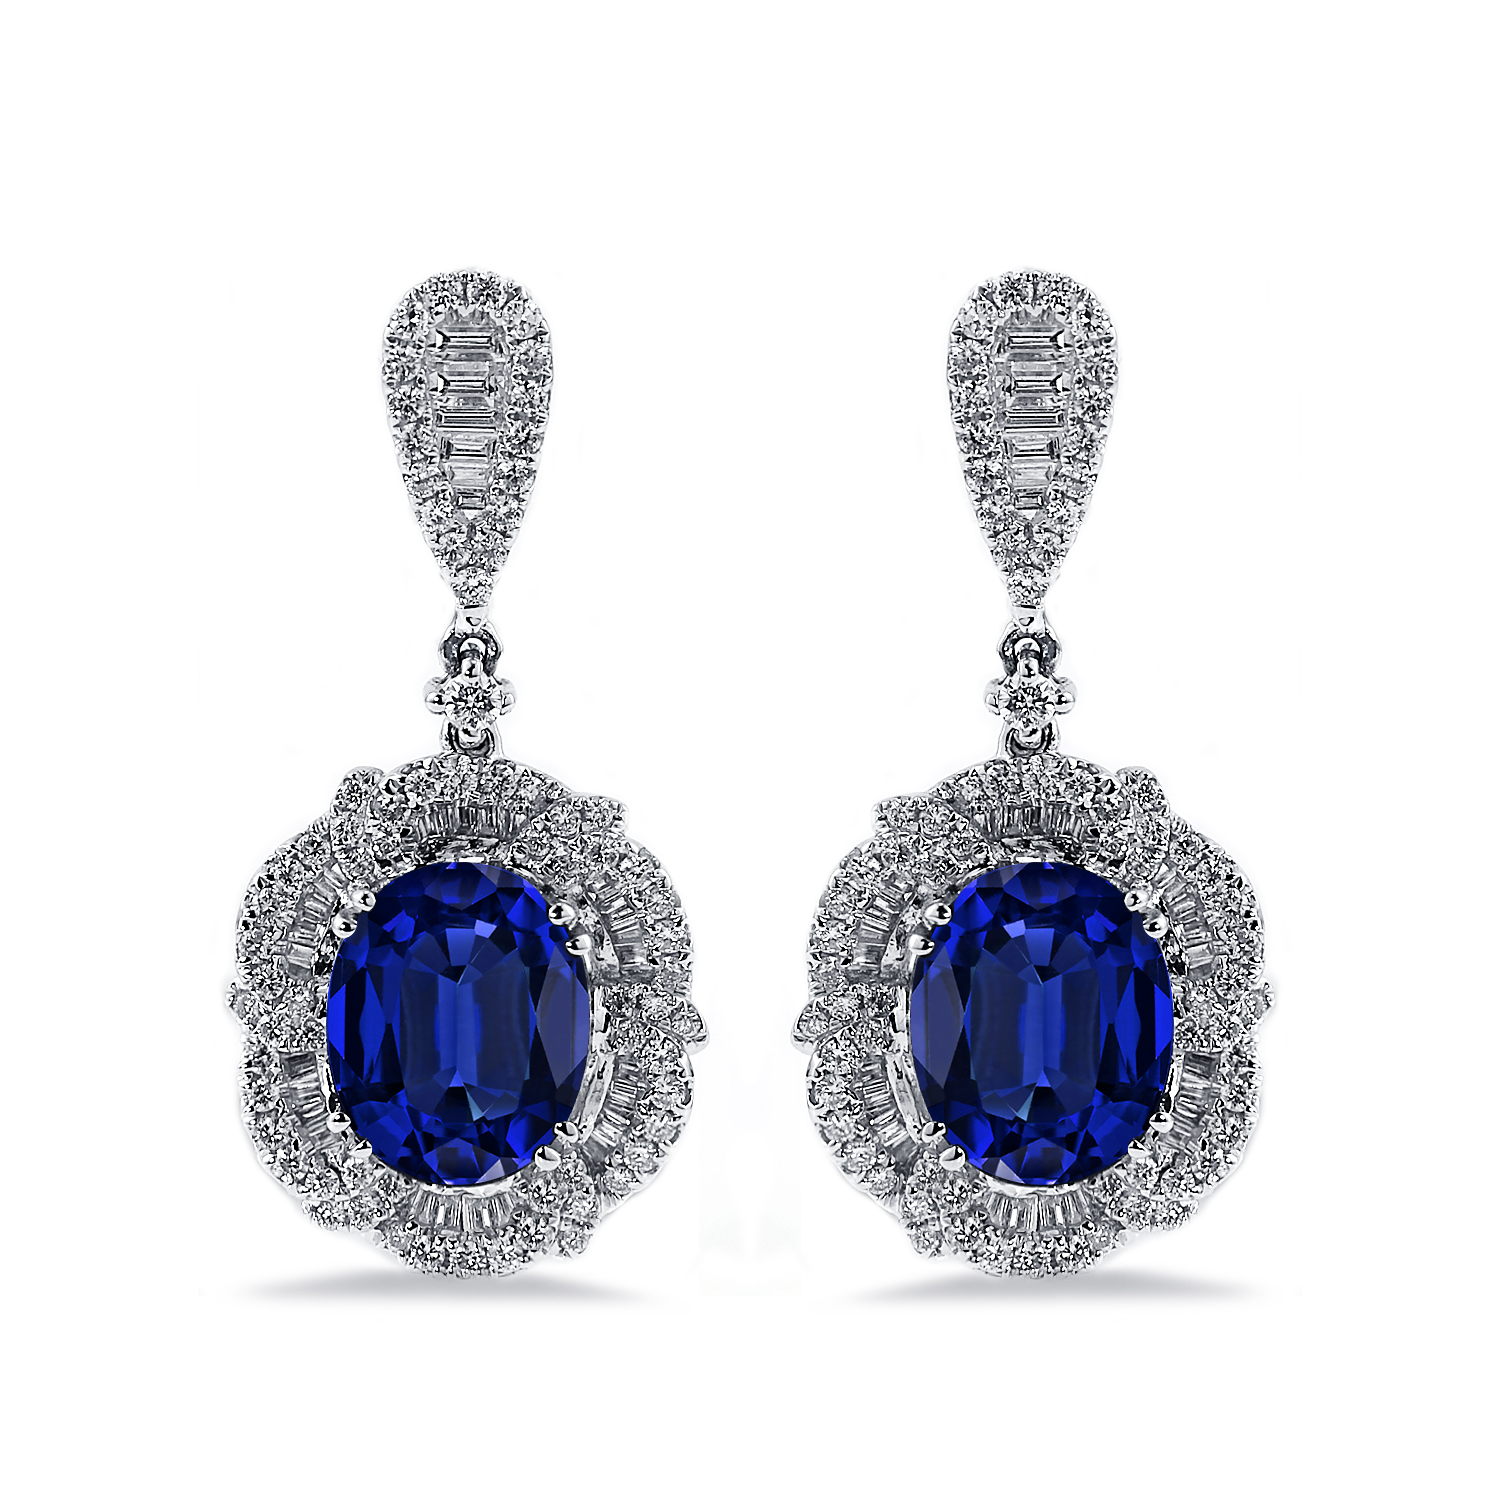 18K White Gold Halo Diamond Drop Earrings with 6 3/8 cttw Oval Blue Sapphire and 2 1/8 cttw Diamonds IGI Certified